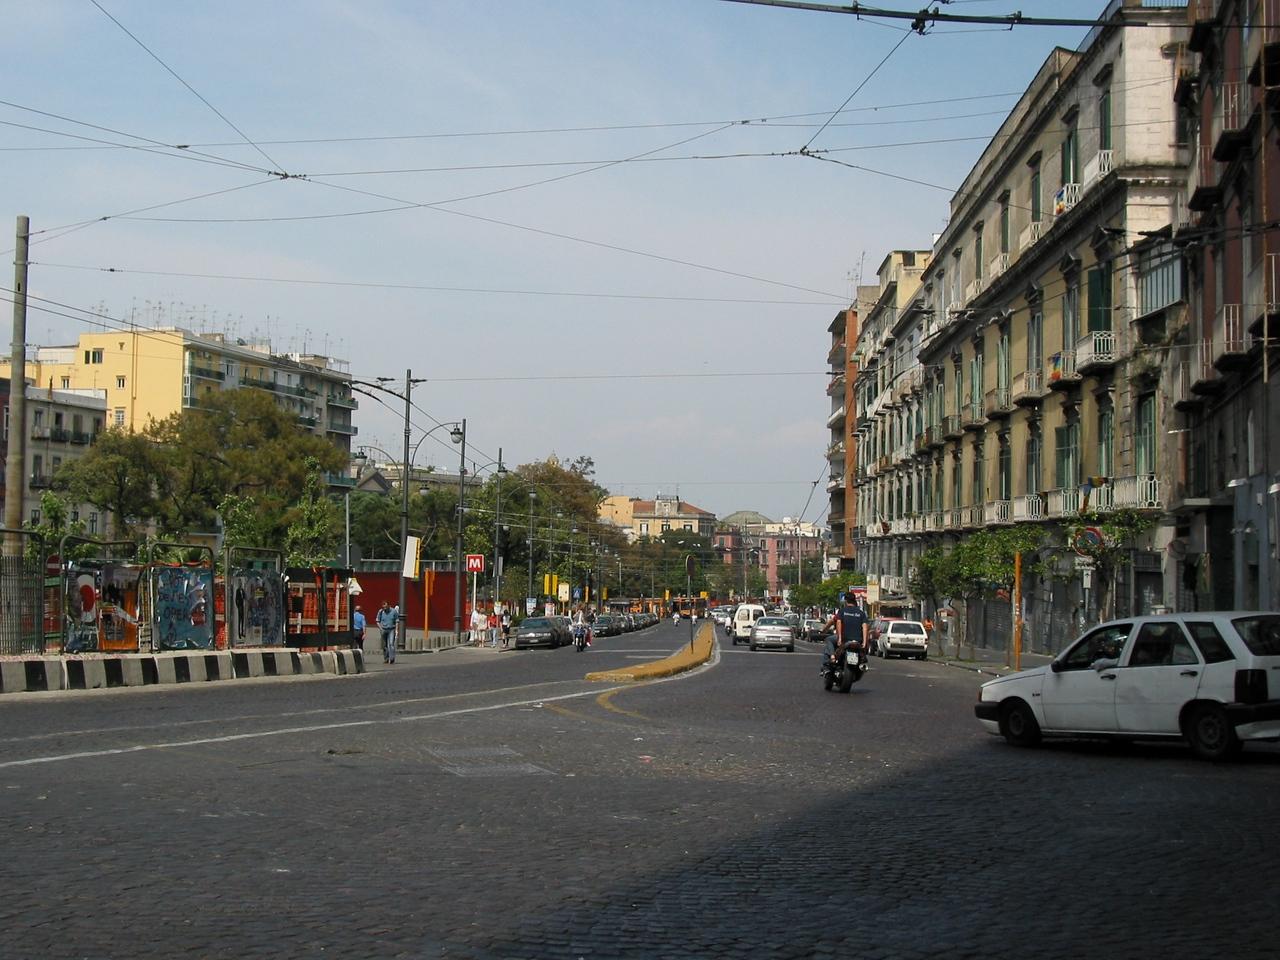 The streets of Naples can be a very busy place and isn't for the faint of heart.